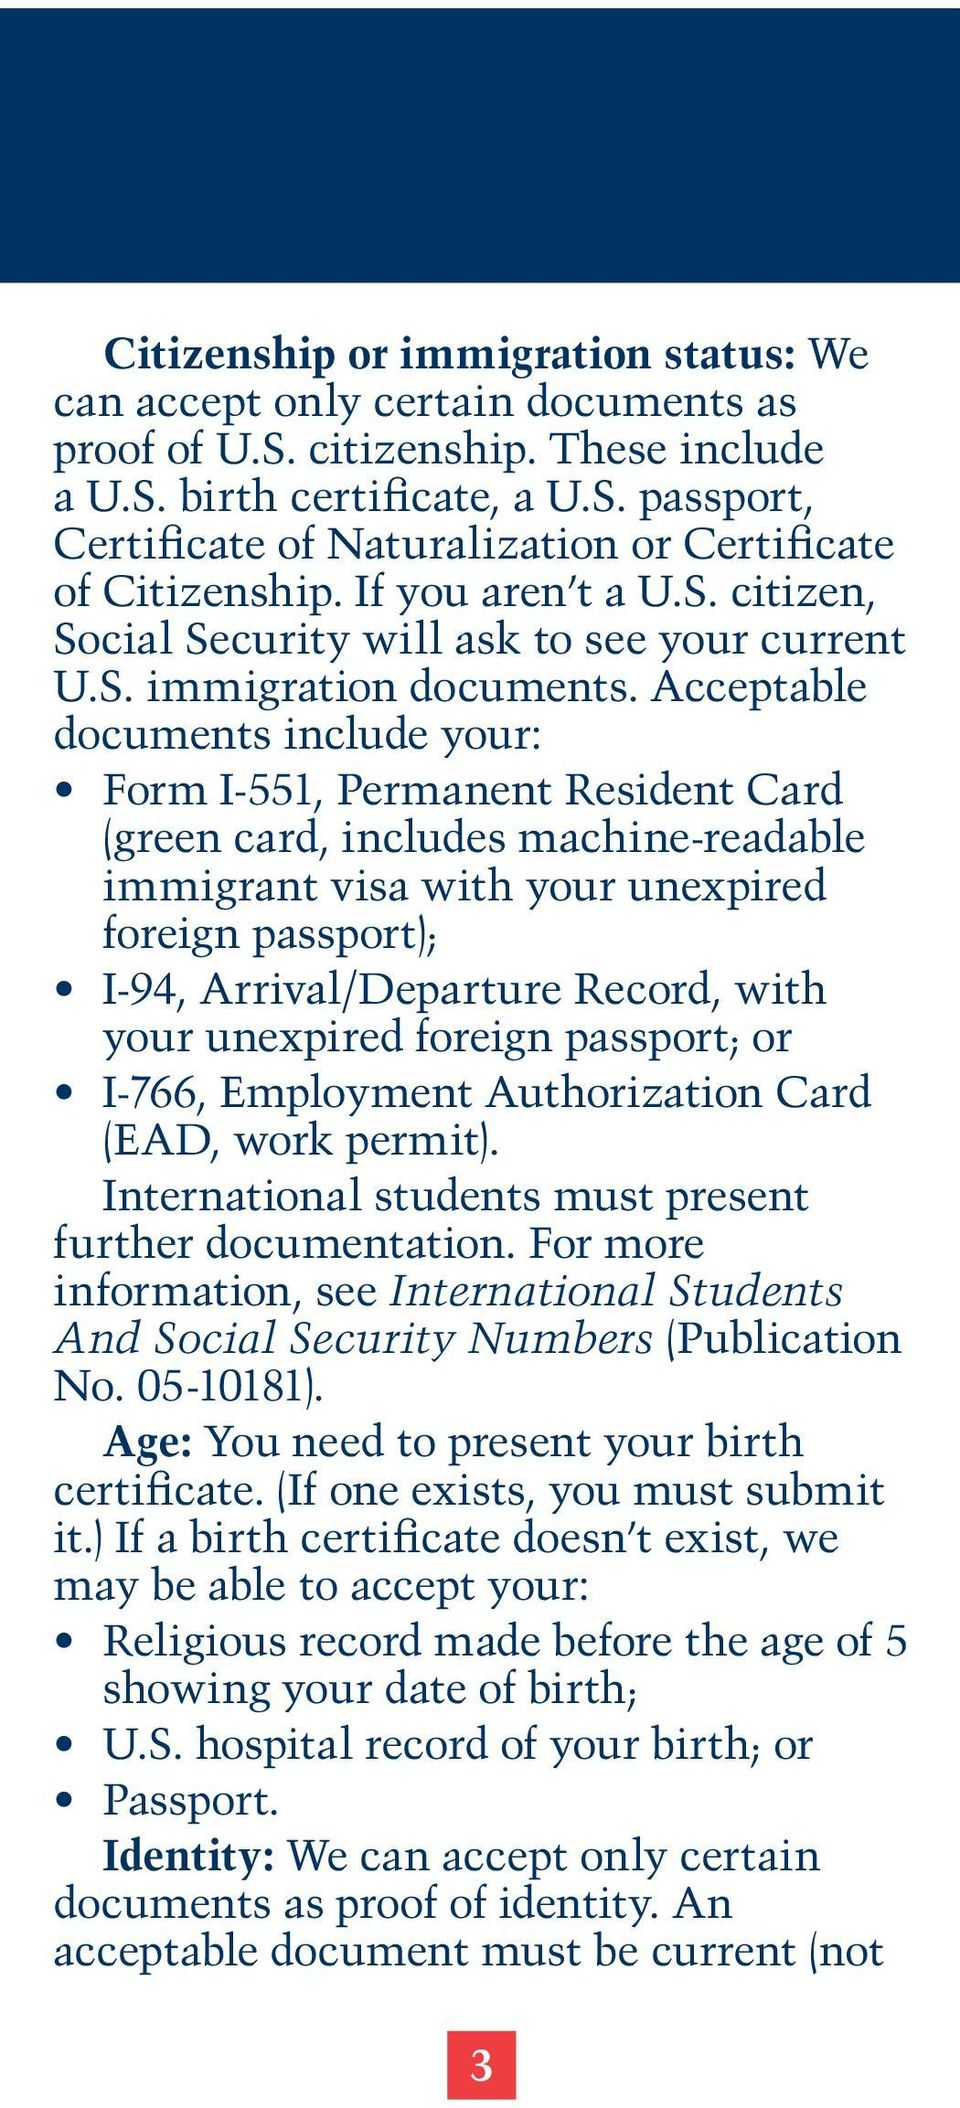 Acceptable documents include your: Form I-551, Permanent Resident Card (green card, includes machine-readable immigrant visa with your unexpired foreign passport); I-94, Arrival/Departure Record,